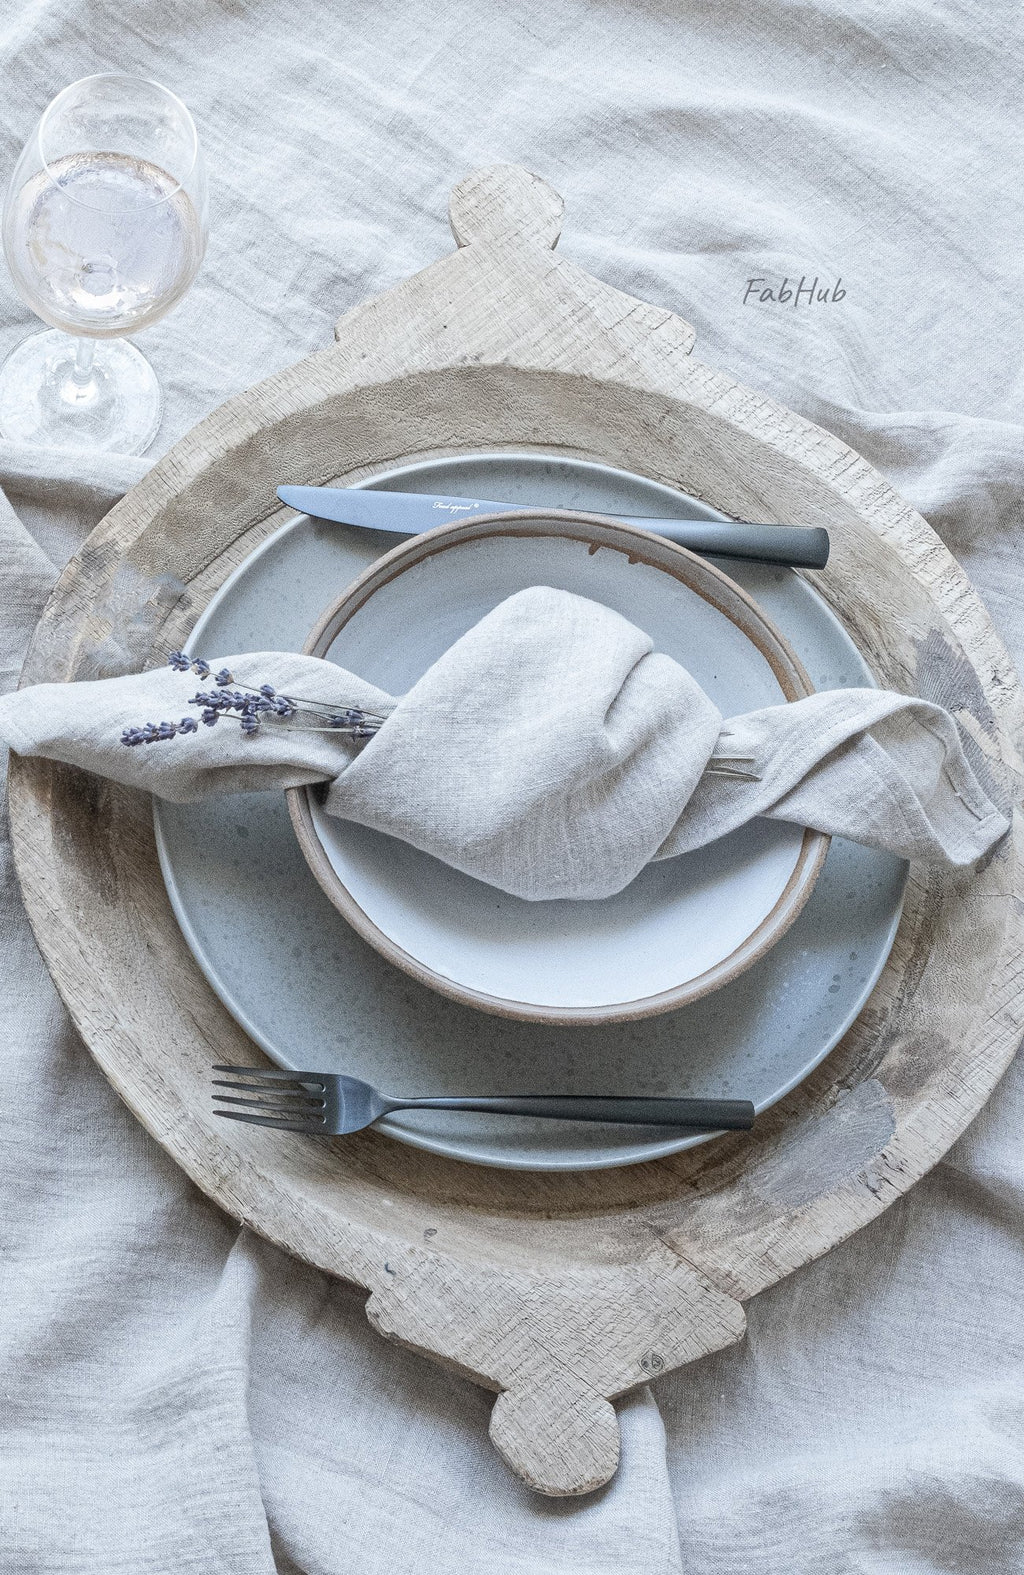 Natural Linen Tablecloth Set - Home Decor | Shop Baskets, Ceramics, Pillows, Rugs & Wall Hangs online